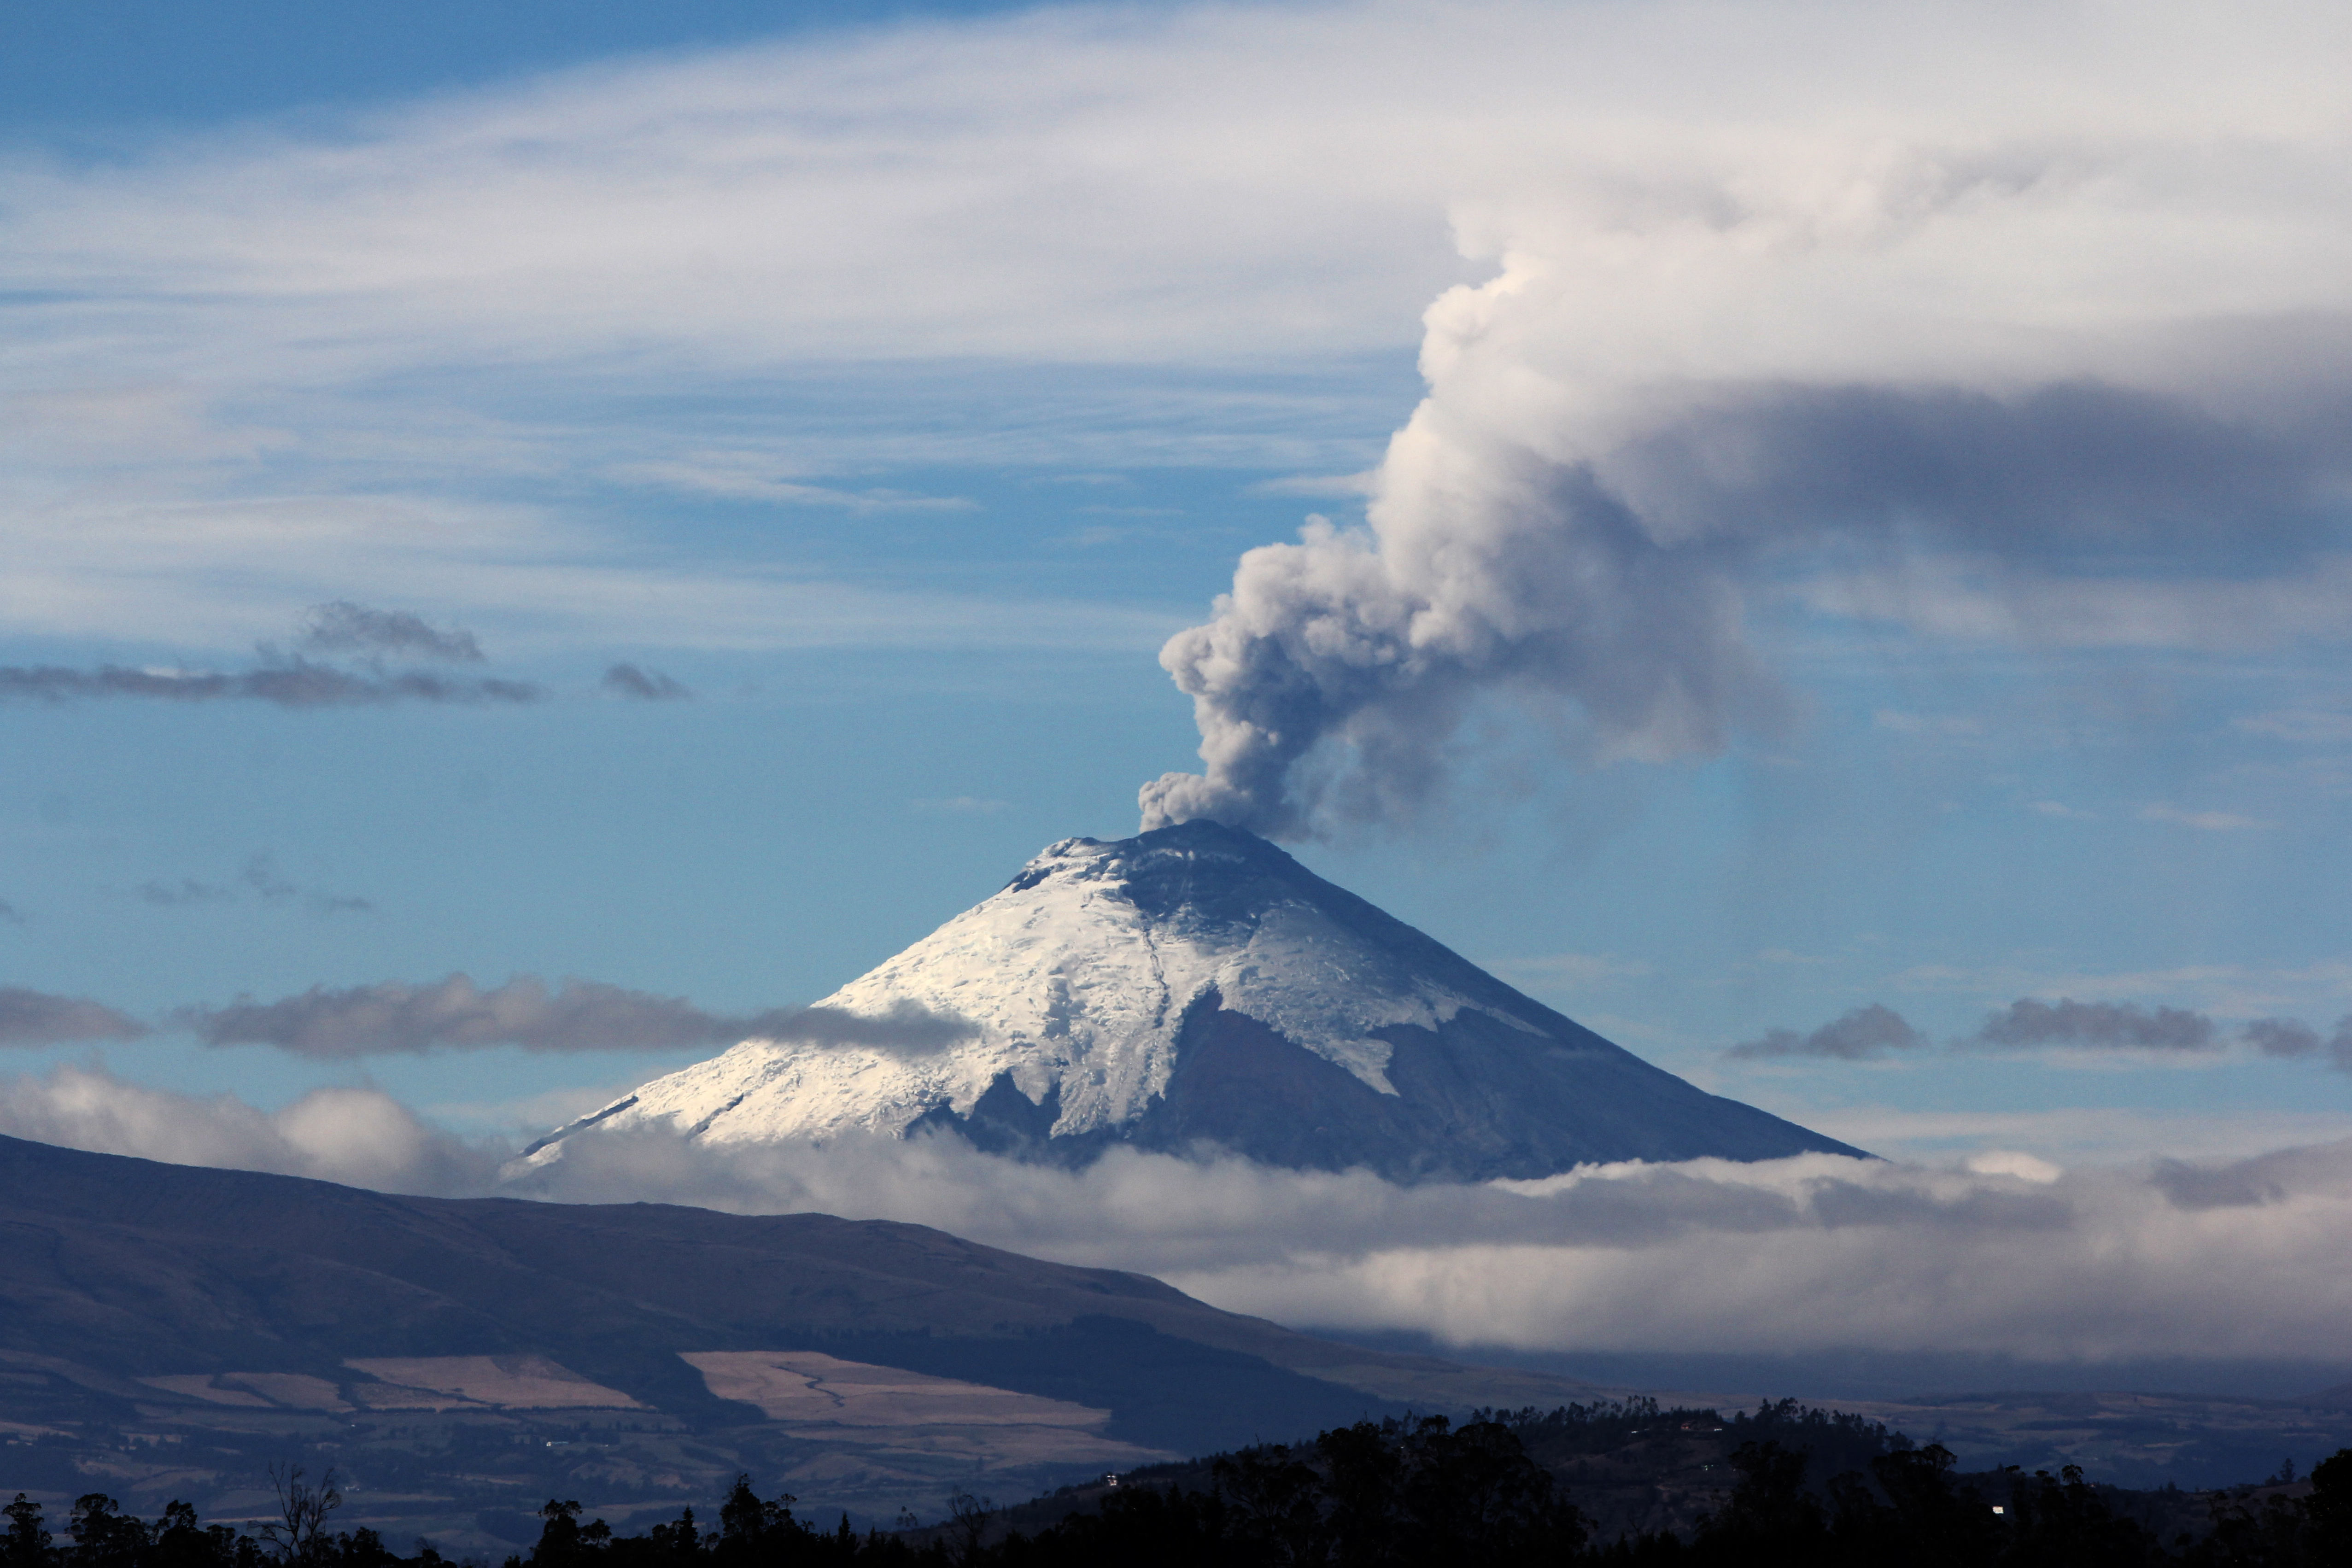 Cotopaxi, one of South America's most dangerous volcanoes, emits a mixture of volcanic gases and steam on October 19, 2015. Photo by Mary Lide Parker.